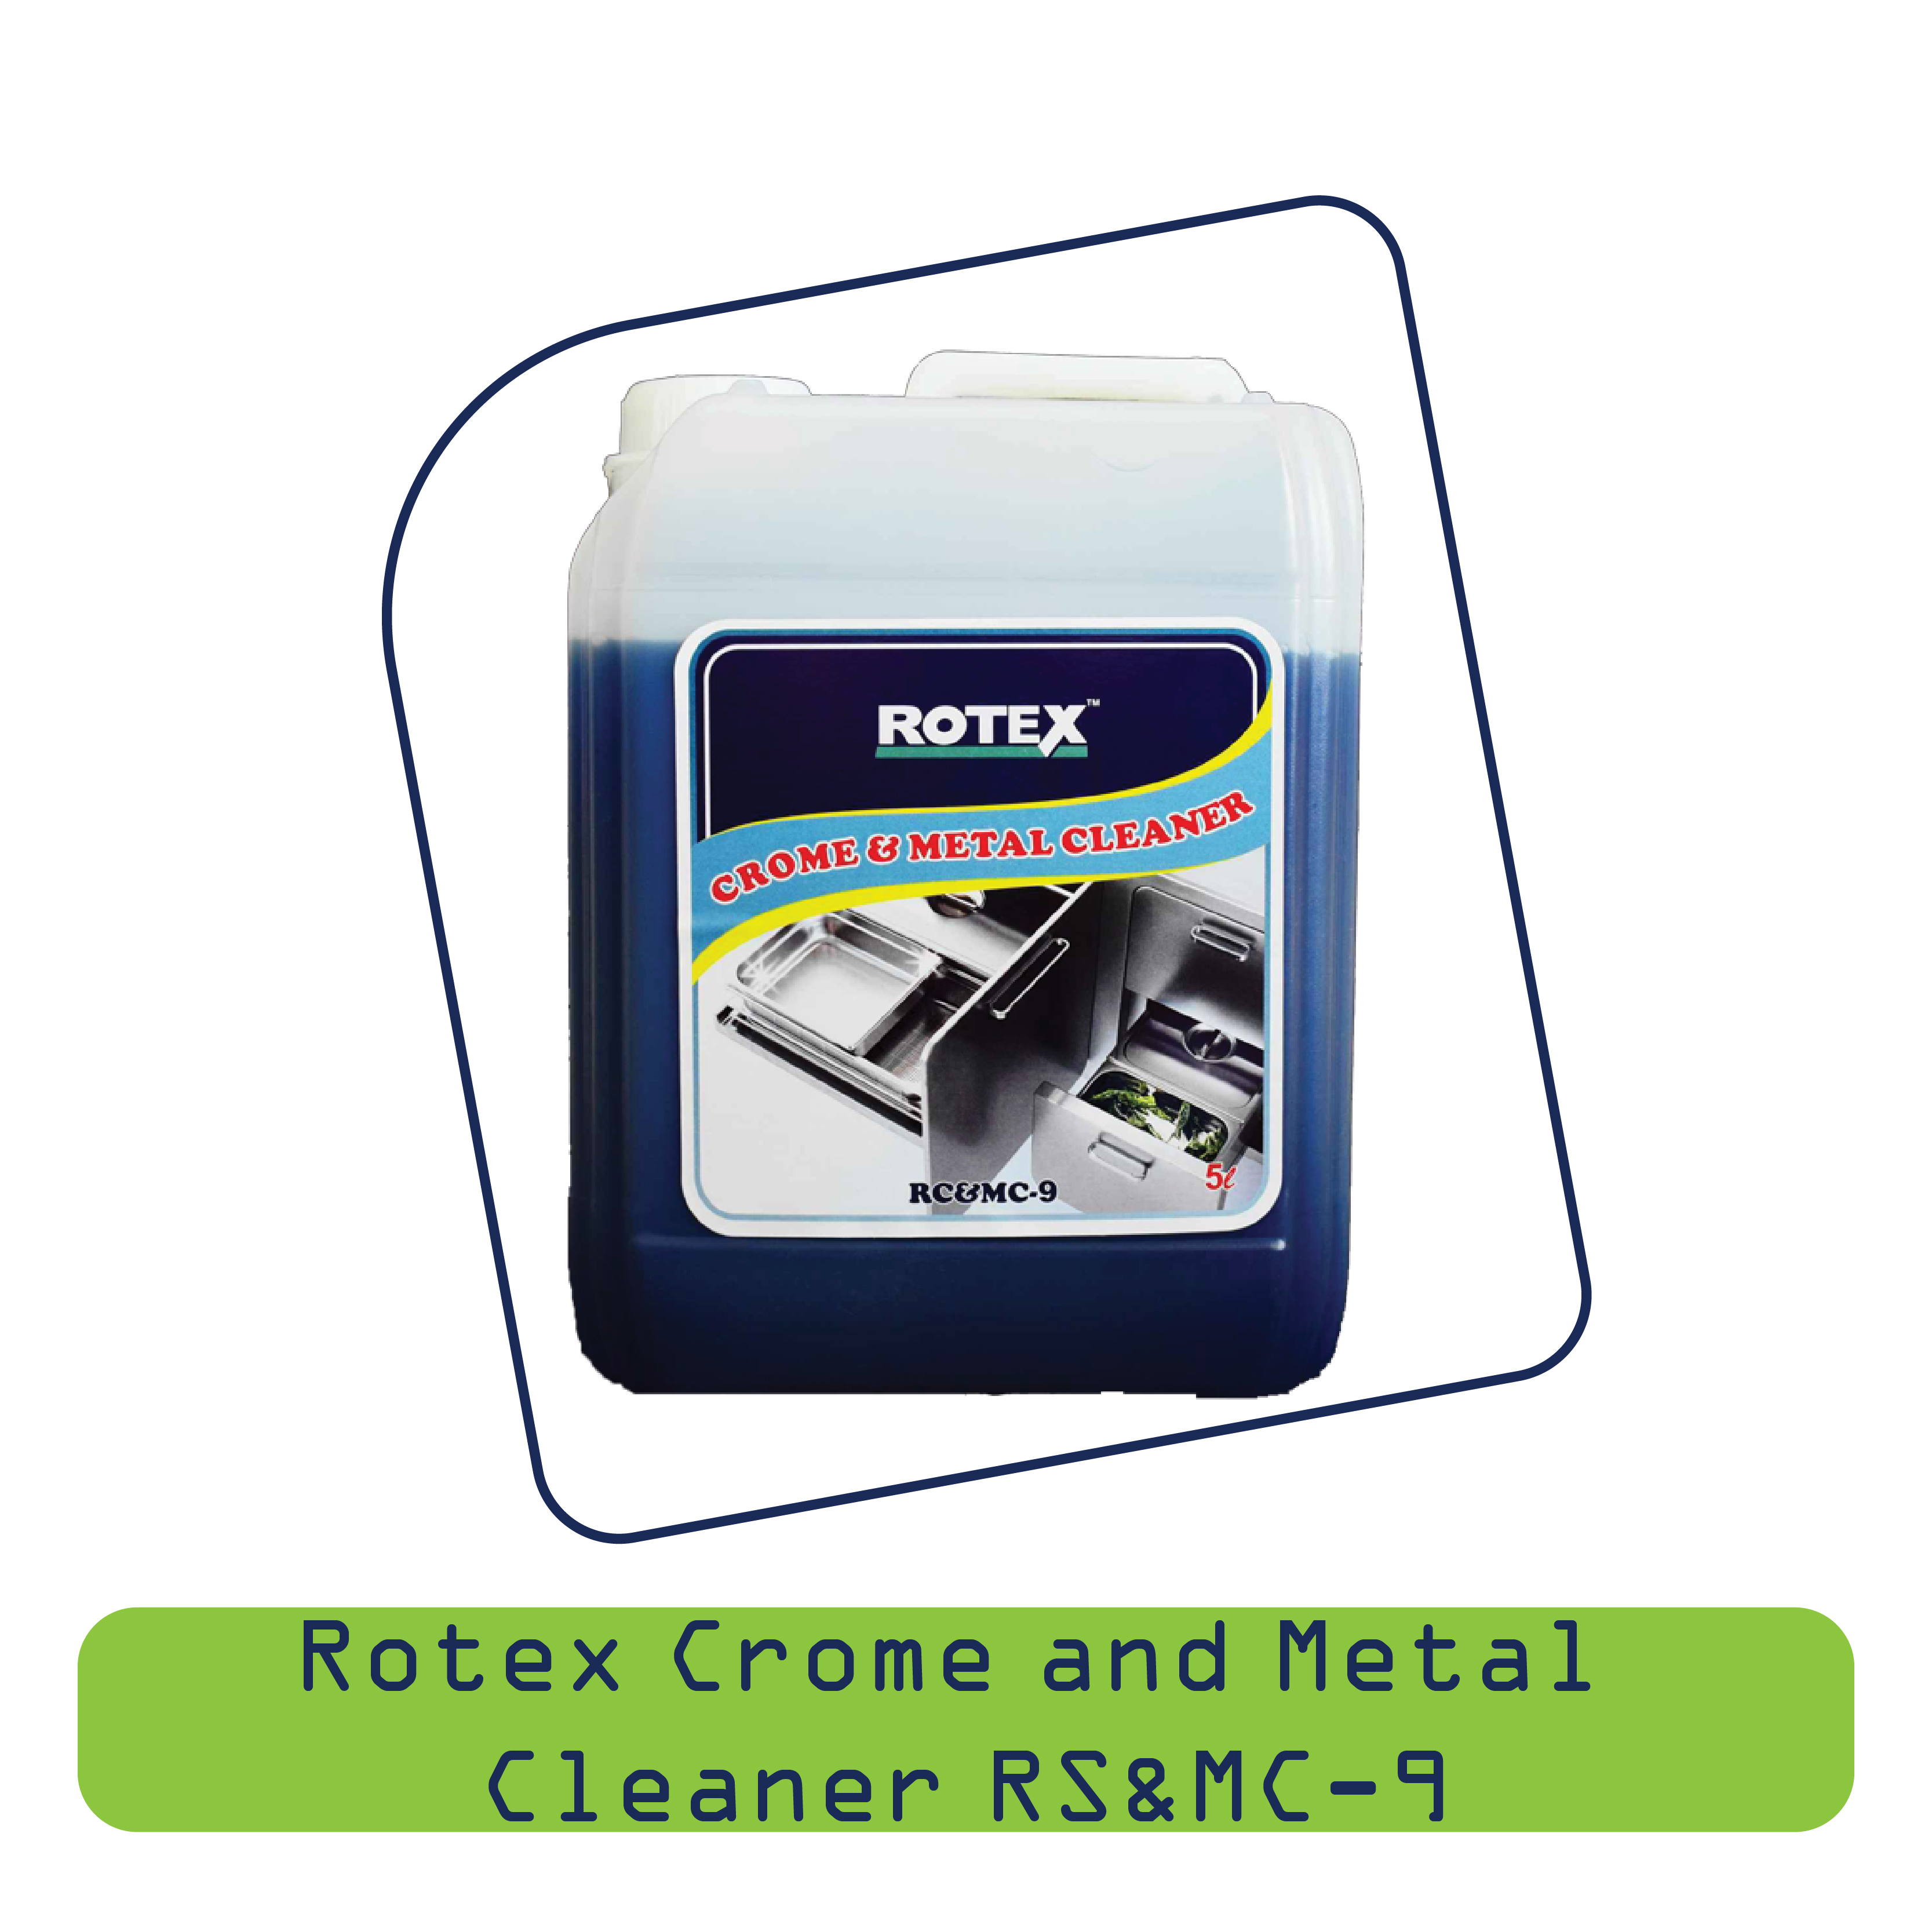 Rotex Crome & Metal Cleaner